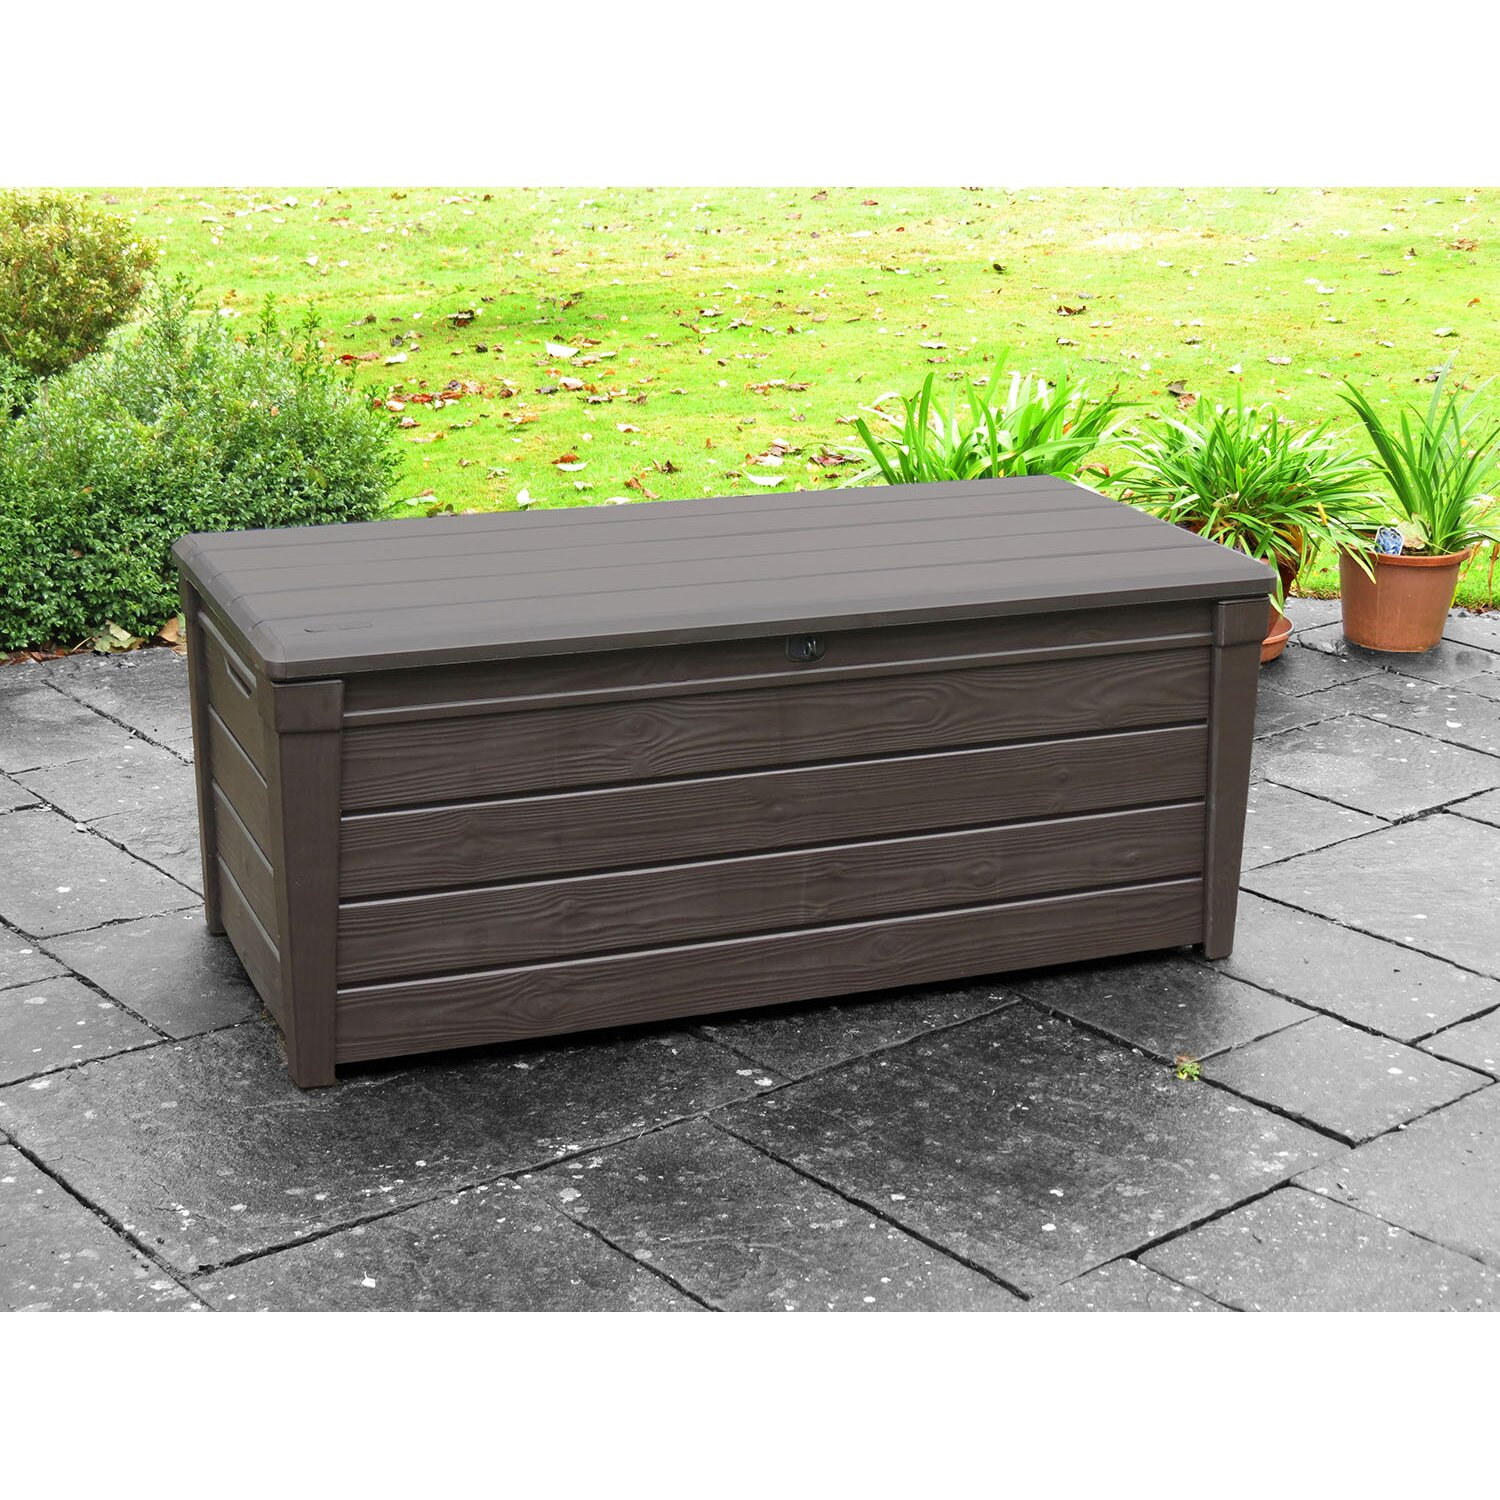 Keter Brightwood 120 Gallon Plastic Deck Box Amp Reviews